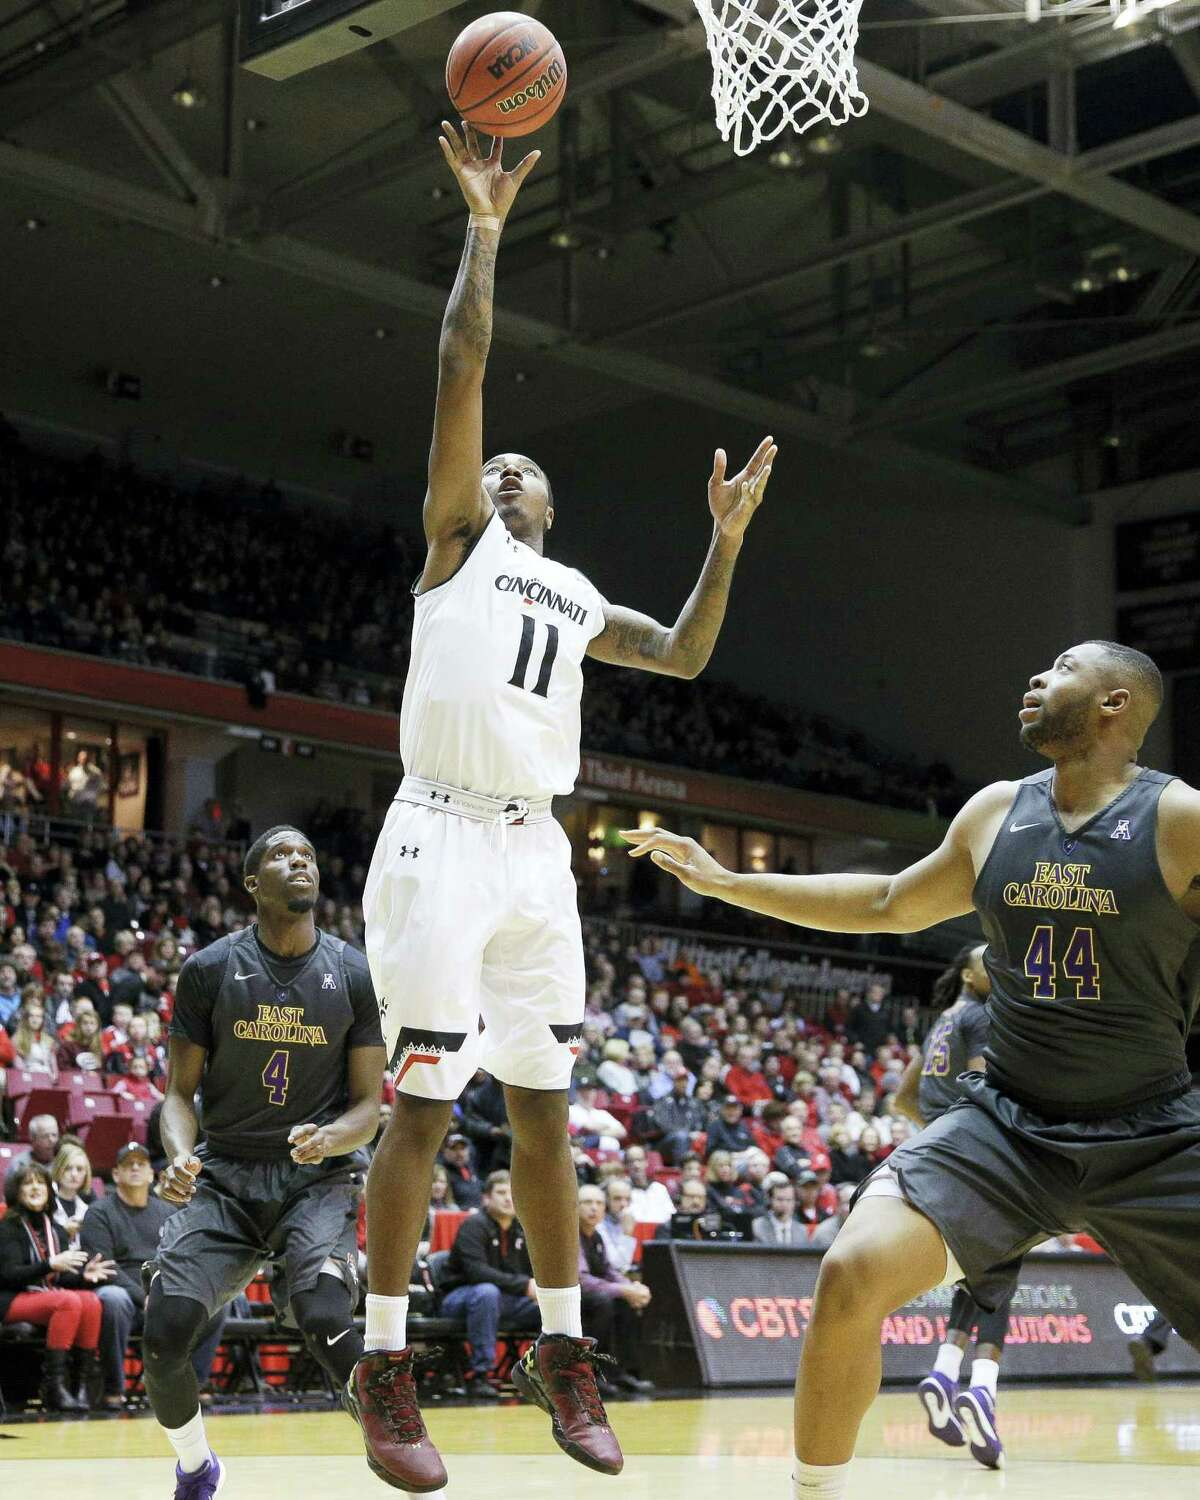 Cincinnati's Gary Clark (11) shoots over East Carolina's Kanu Aja (44) during a recent game.